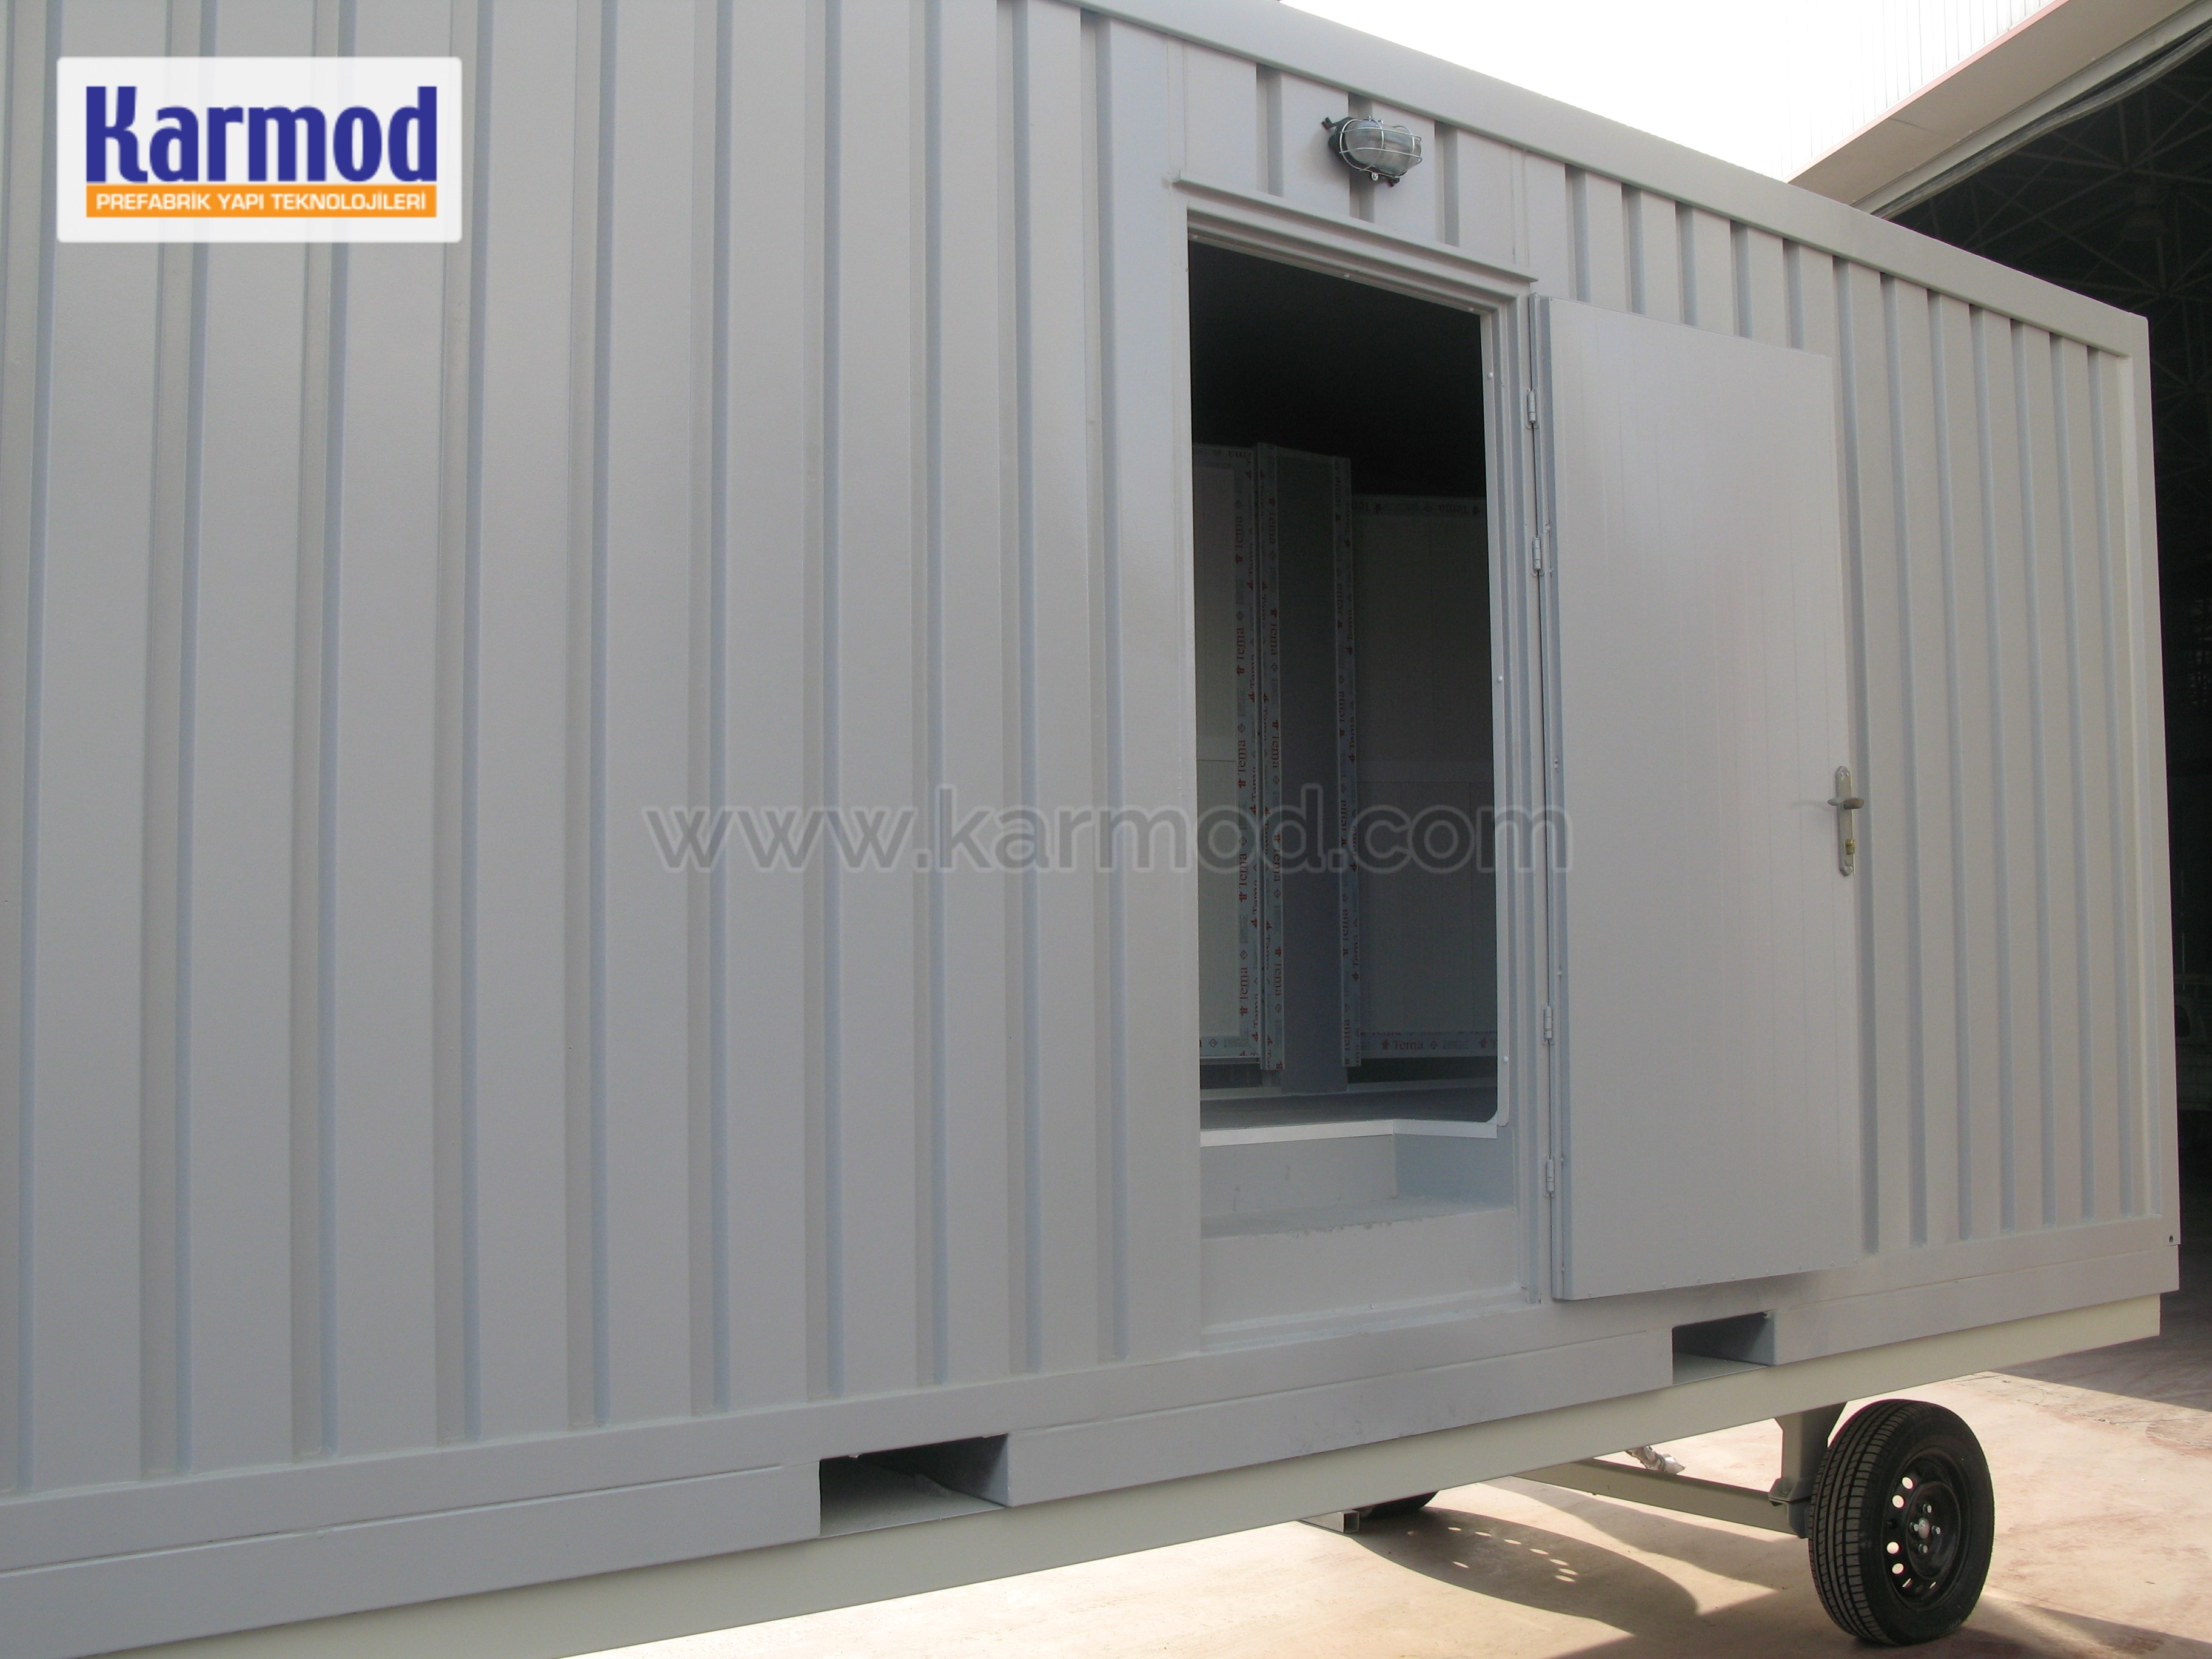 construction site shelters